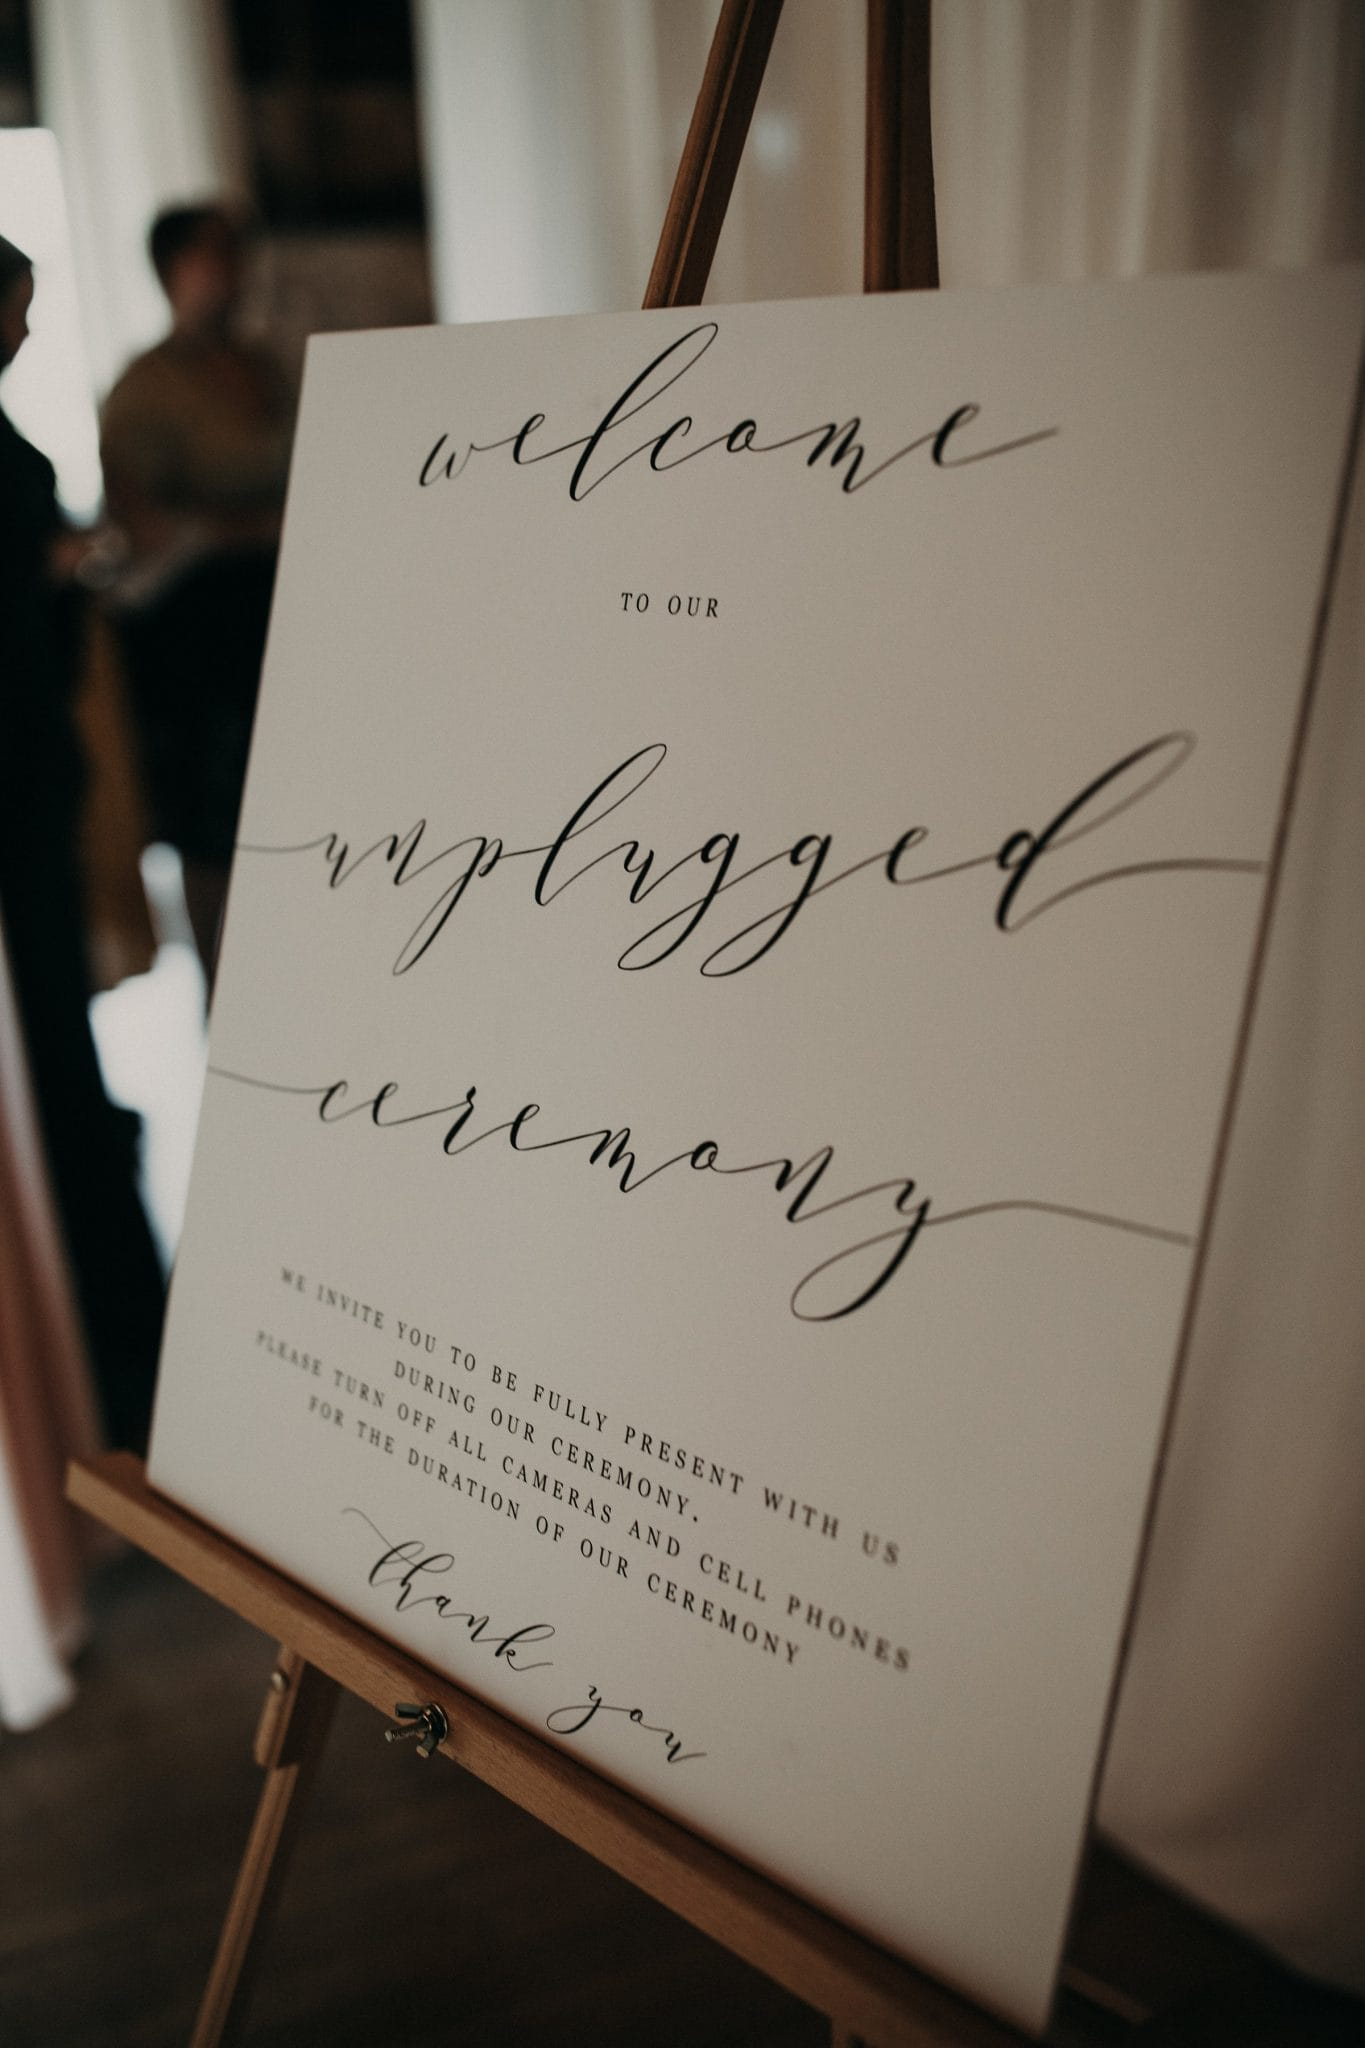 """Easel holding a poster that says """"welcome to our unplugged ceremony we invite you to be fully present with us during our ceremony. please turn off all cameras and cell phones for the duration of our ceremony thank you"""". Photograph by Austin, Texas wedding photographer Nikk Nguyen."""